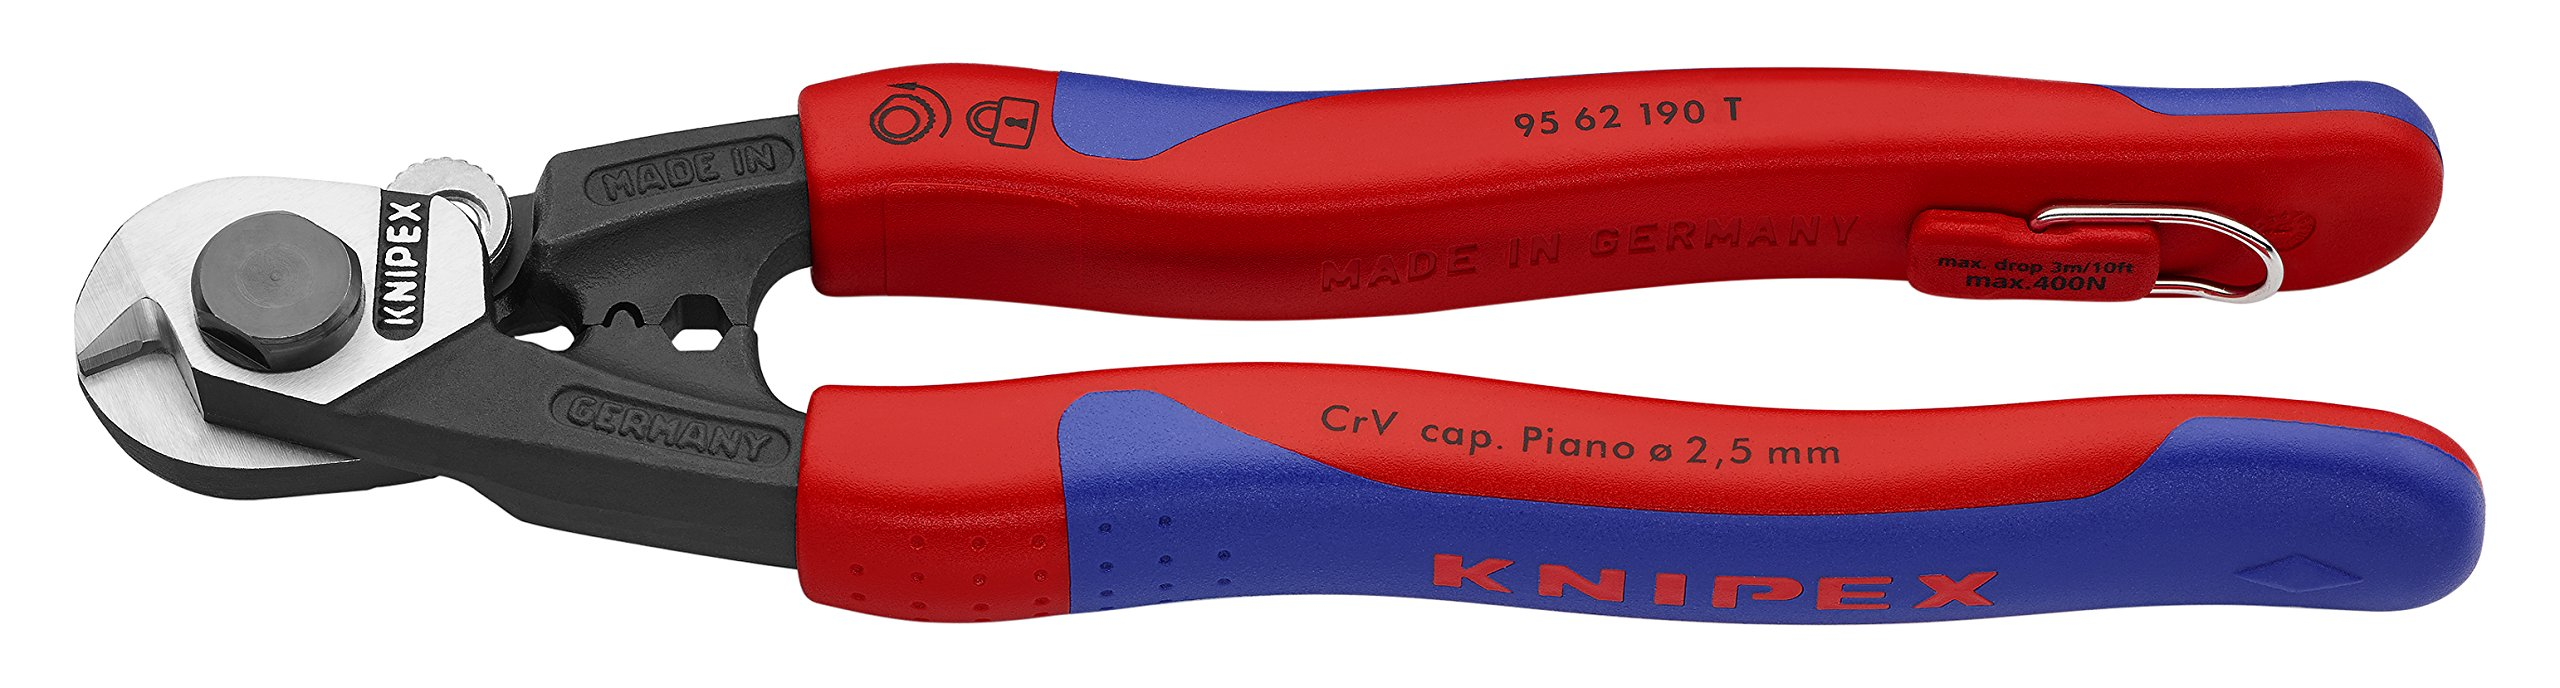 Knipex Tools 95 62 190 T BKA 7 1/2'' Wire Rope Cutters, Tether Attachment-Comfort Grip, by KNIPEX Tools (Image #1)